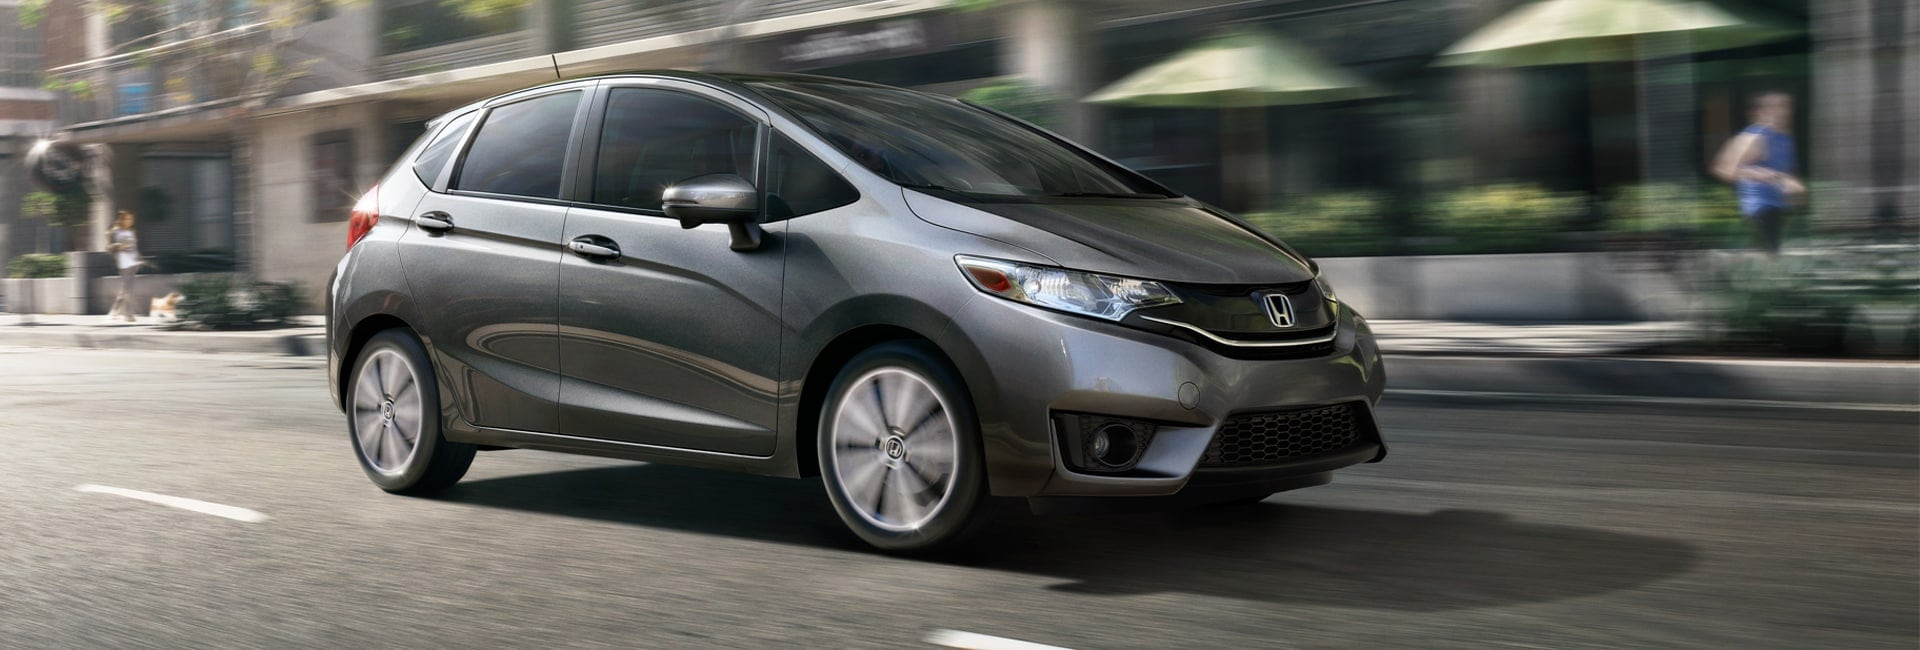 New 2020 Honda Fit Exterior